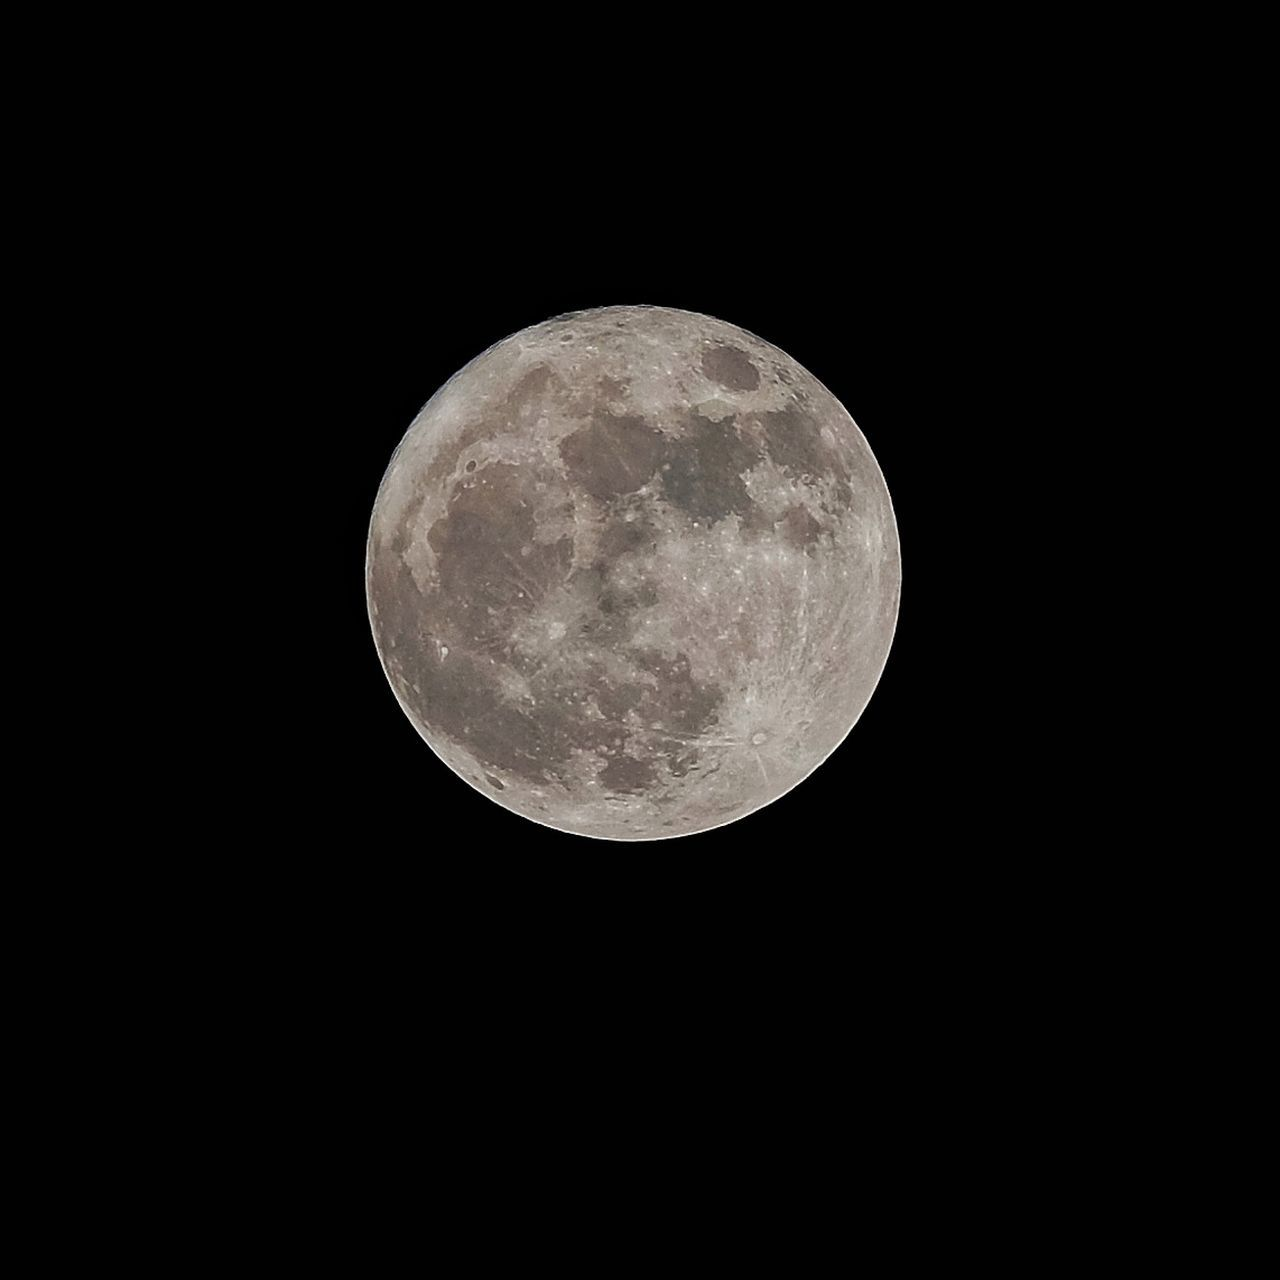 night, moon, full moon, astronomy, moon surface, planetary moon, no people, beauty in nature, nature, outdoors, space exploration, low angle view, scenics, tranquility, space, clear sky, sky, close-up